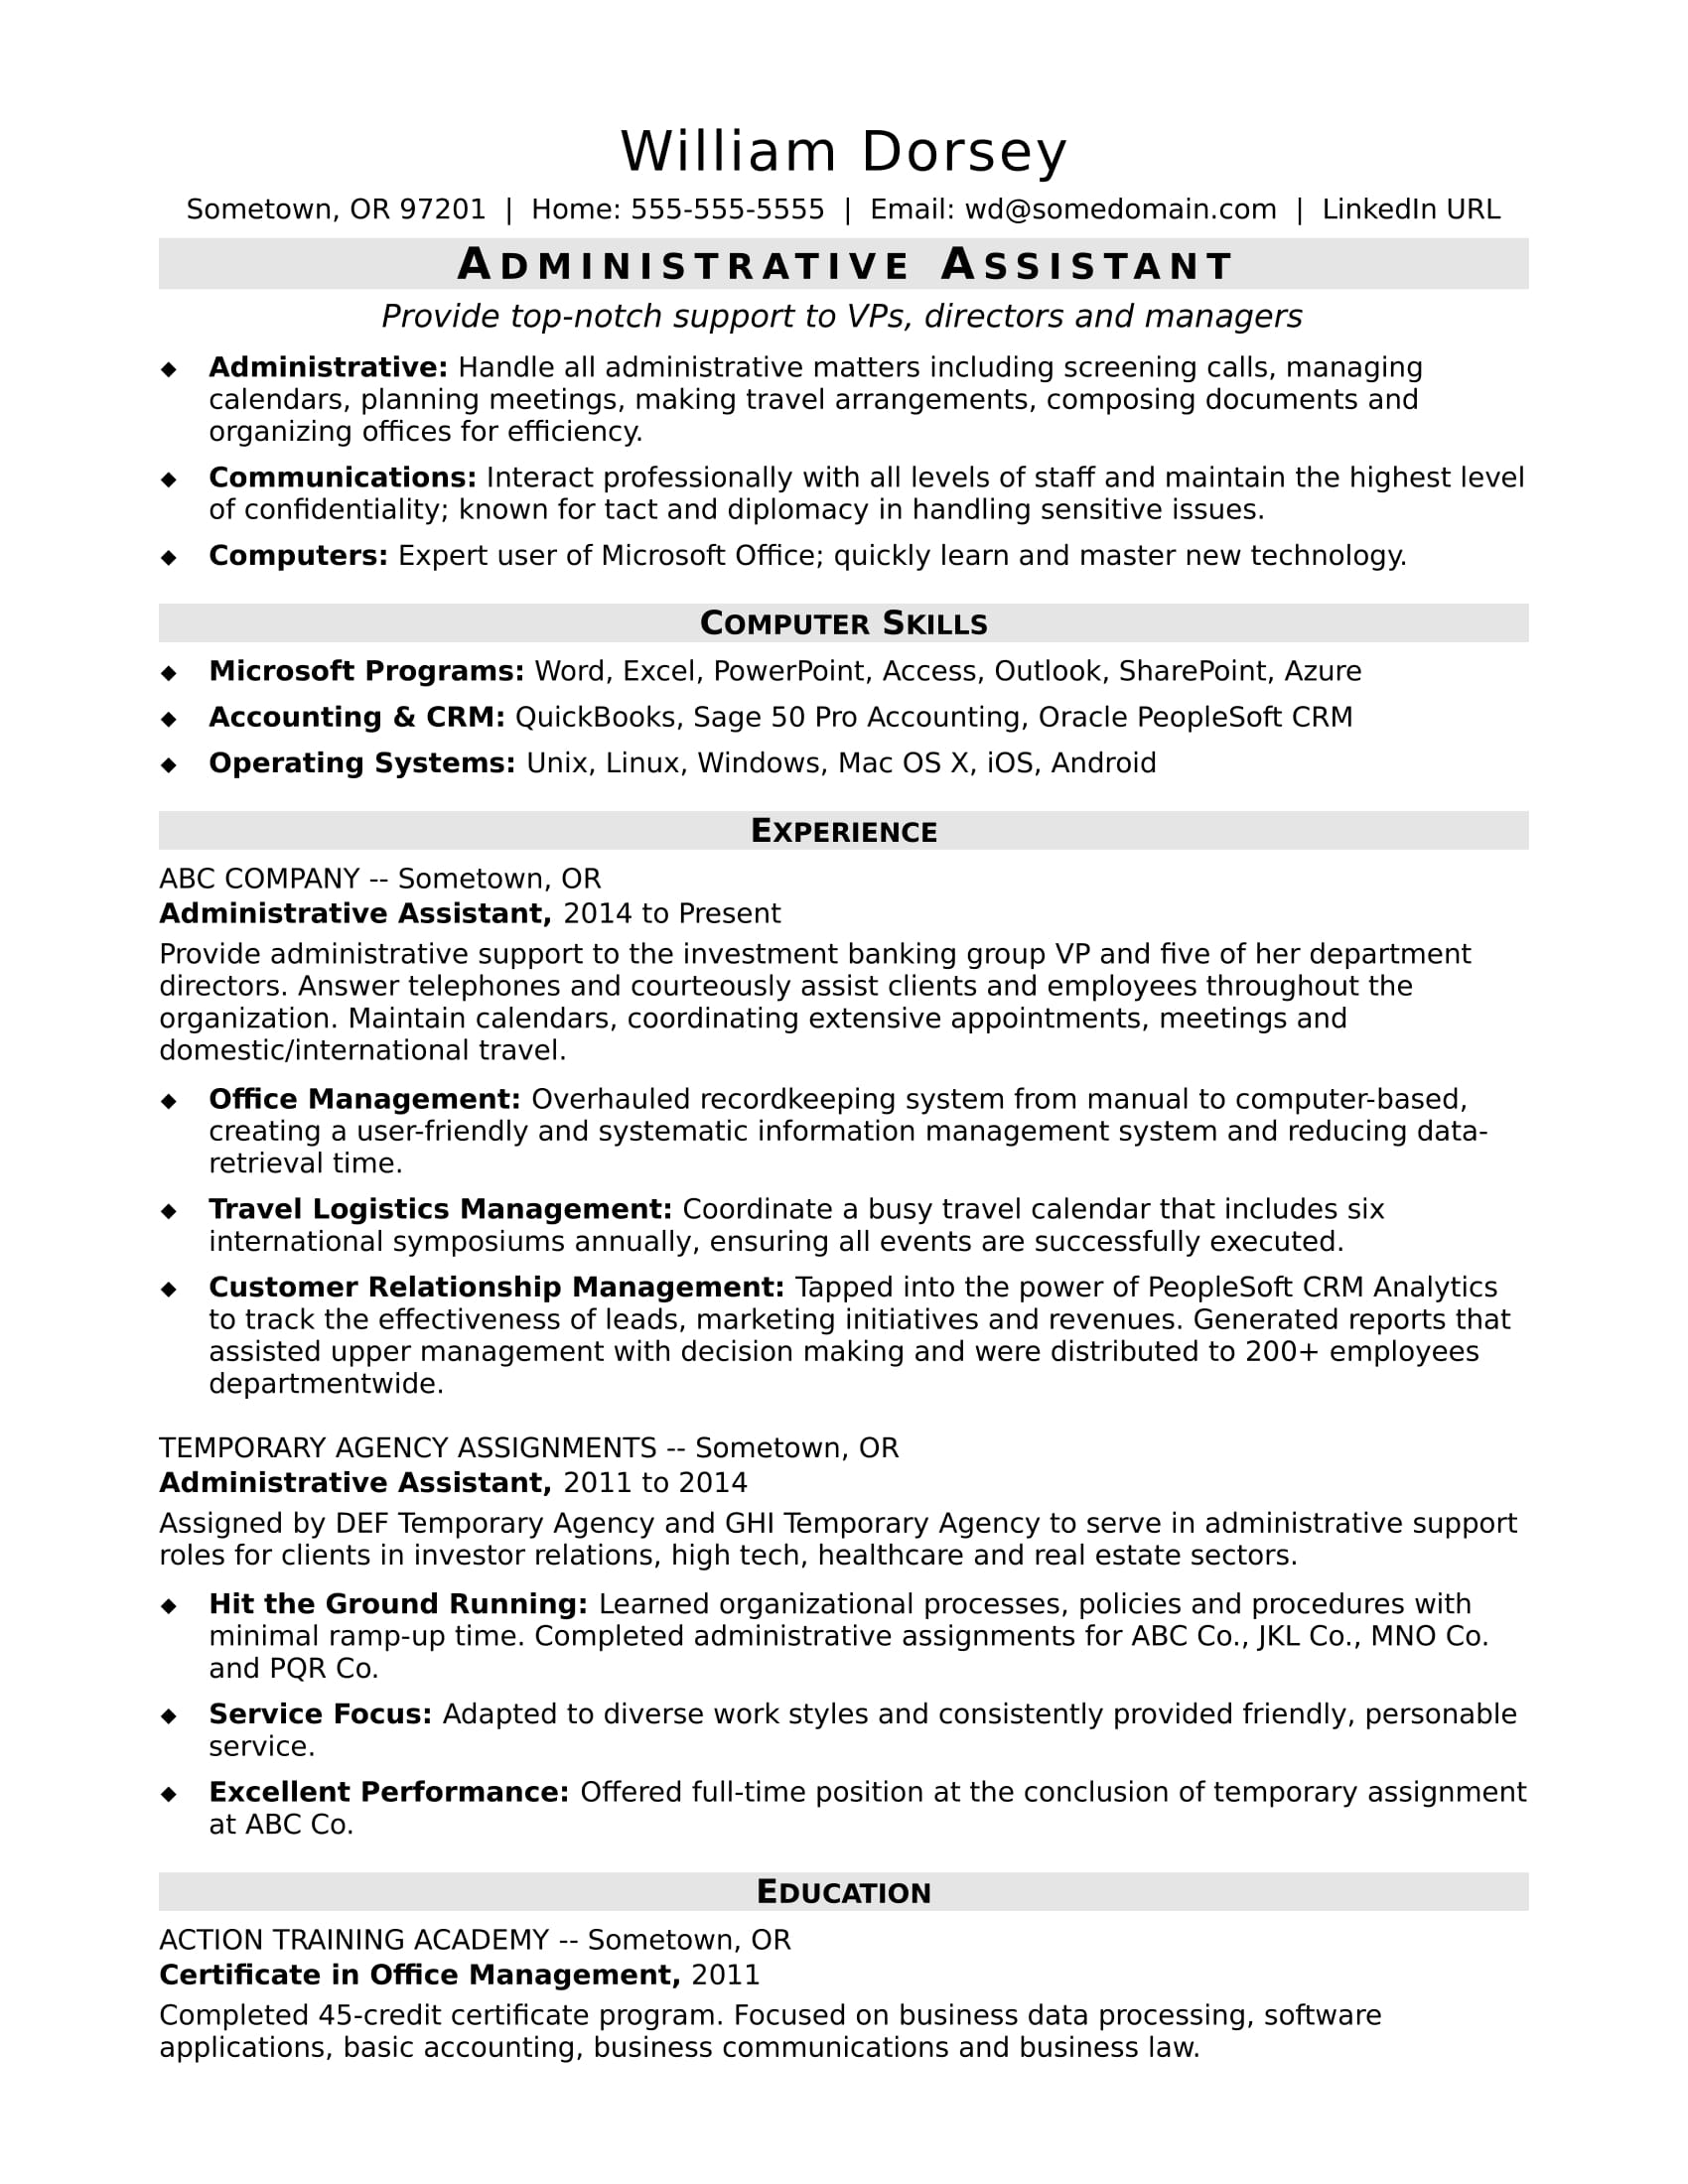 midlevel administrative assistant resume sample monster summary examples skill section on Resume Administrative Assistant Resume Summary Examples